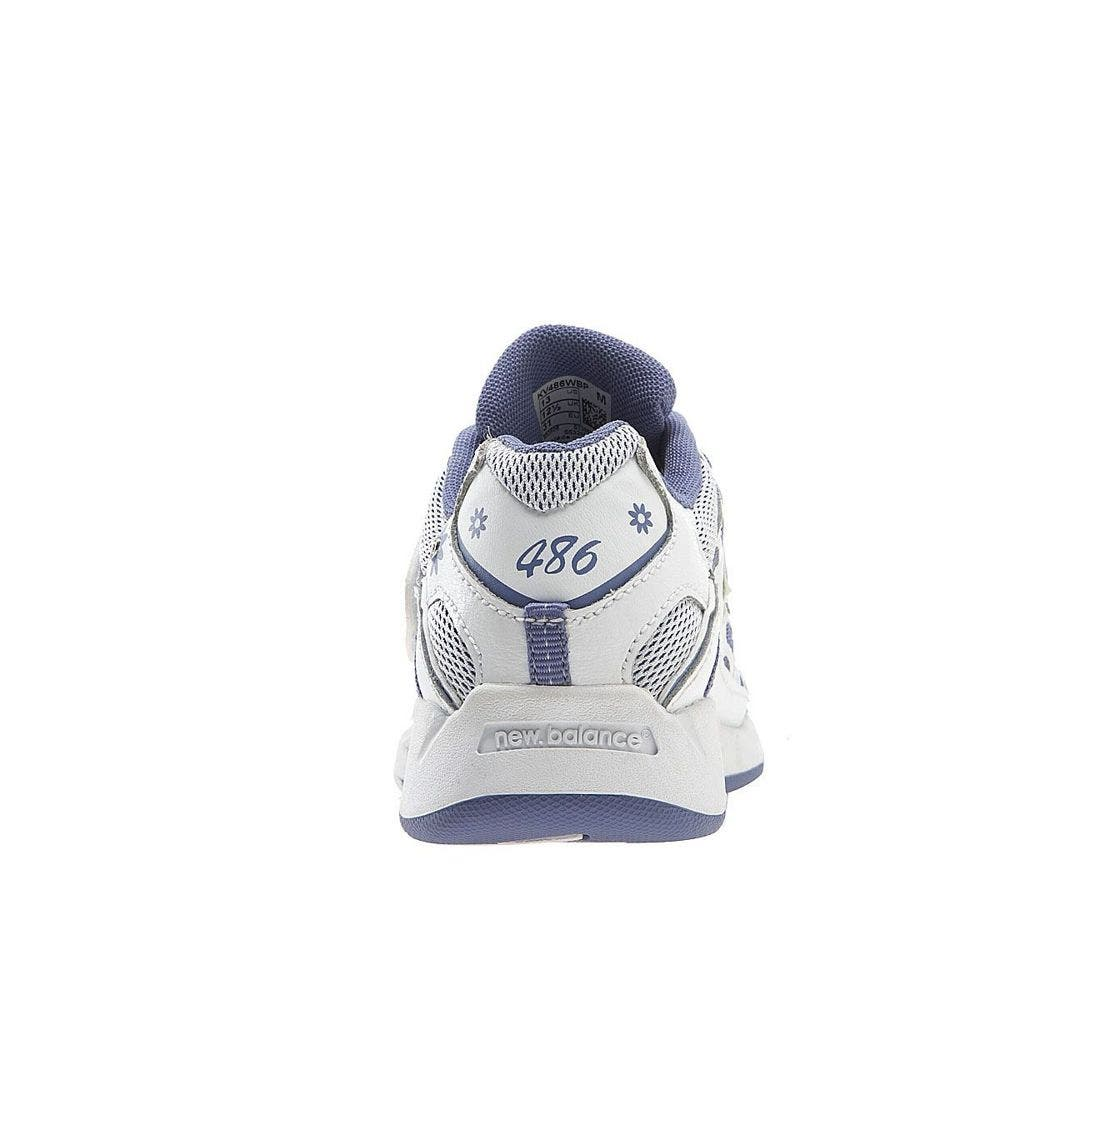 '486' Athletic Shoe,                             Alternate thumbnail 2, color,                             SIB